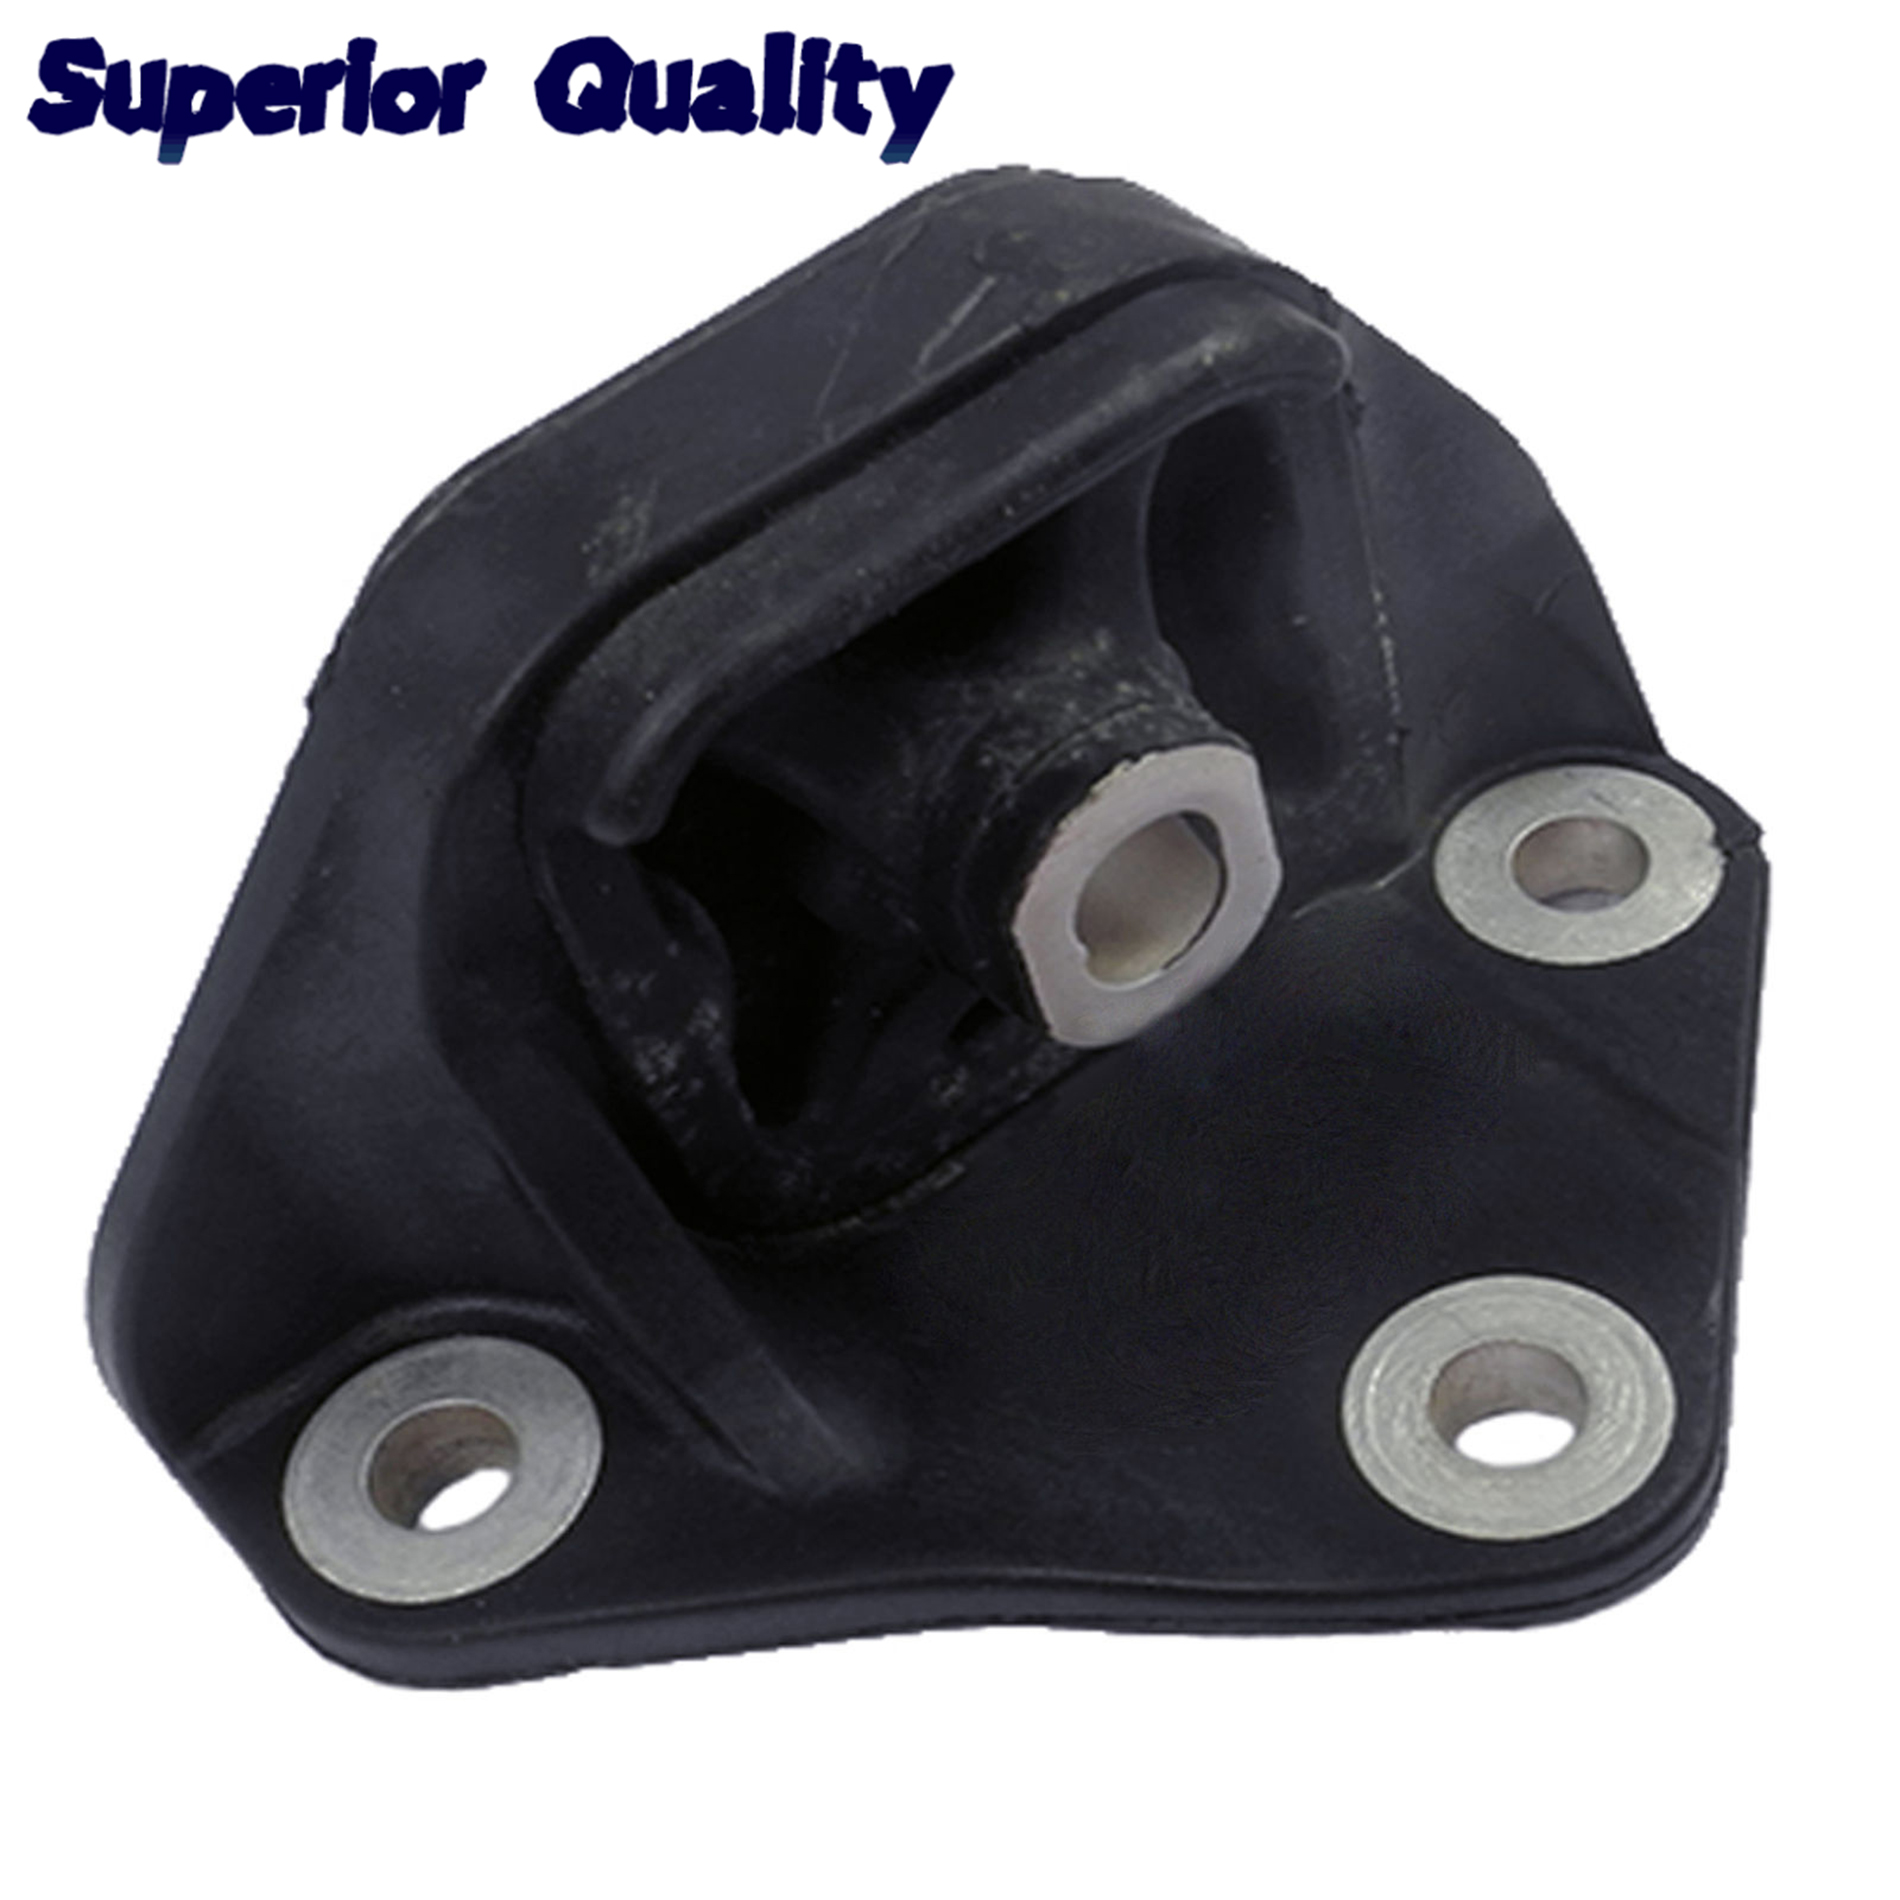 3.5L Automatic Transmission Mount for 2007-2008 Acura TL 3.2L